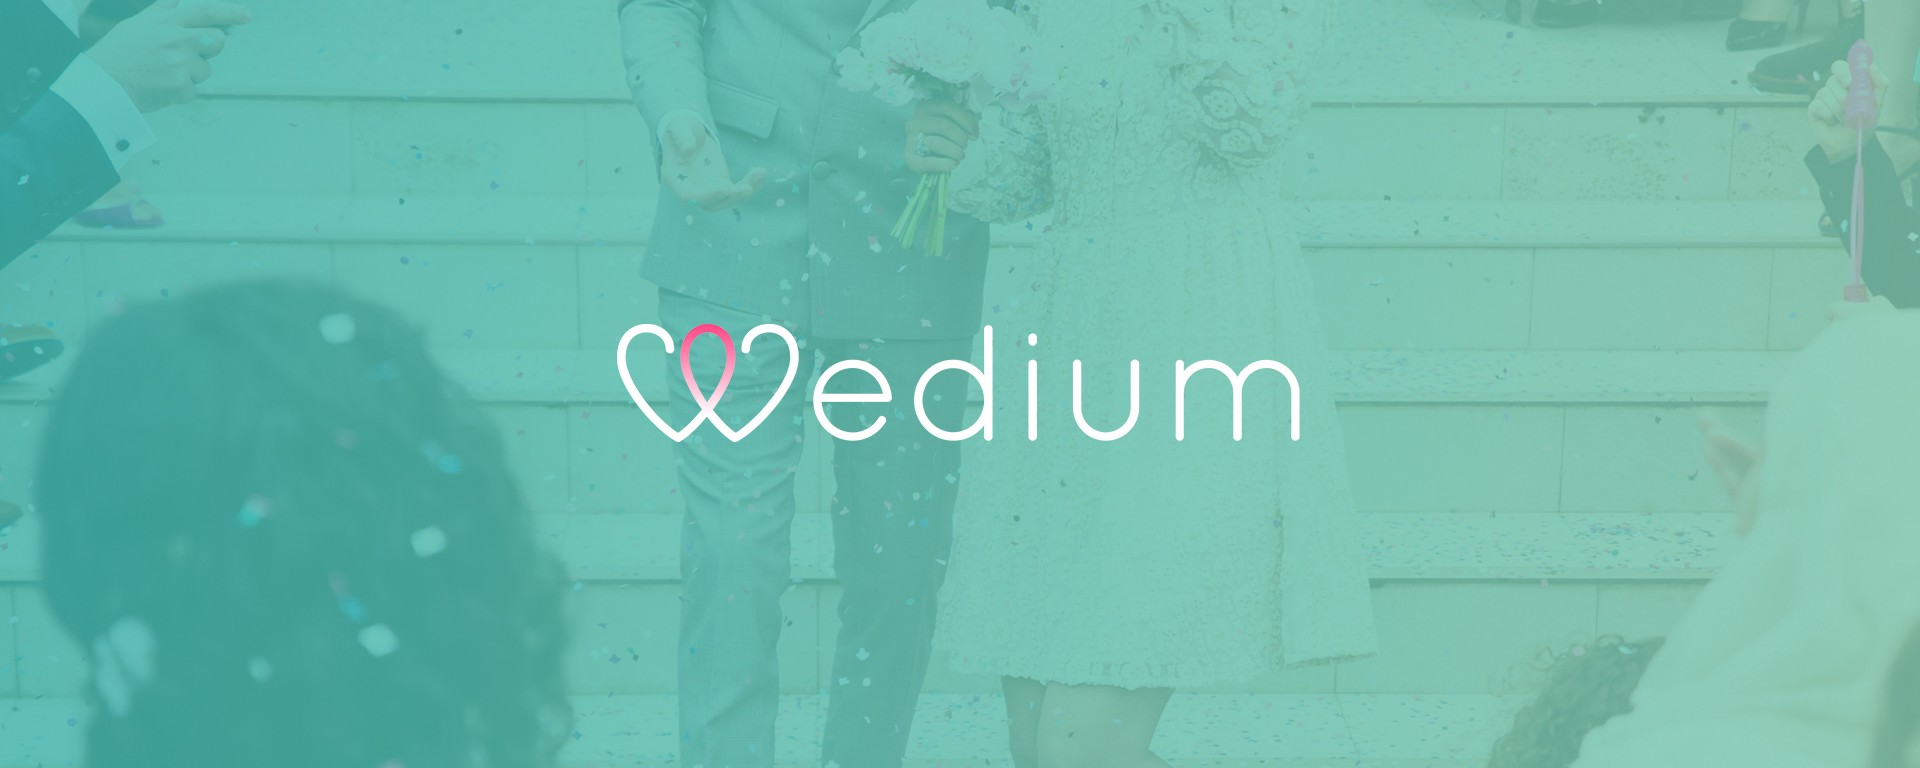 Wedium The Alternative For Wedding Gifts Go Weekly Insights Medium